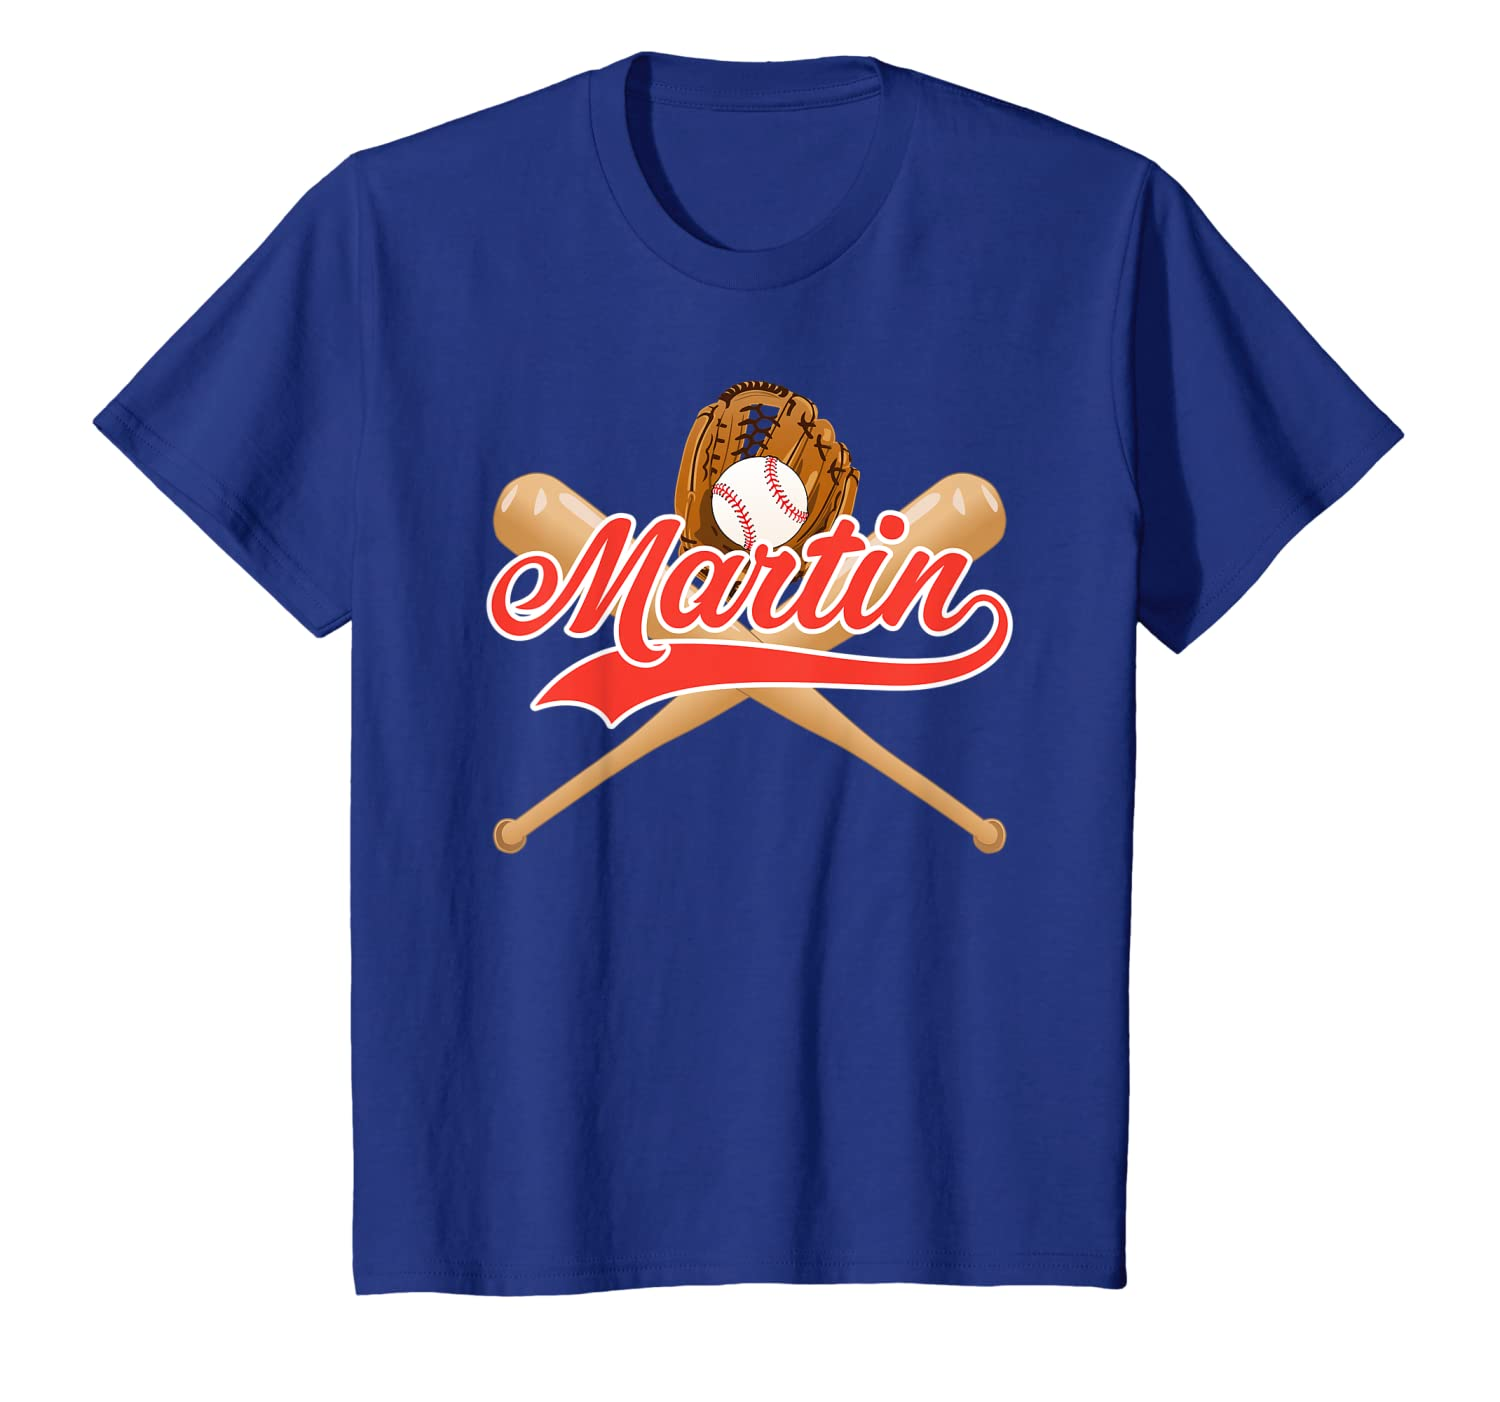 Kids Baseball Player Martin Birthday Boy T-Shirt Kids Name Gift Unisex Tshirt